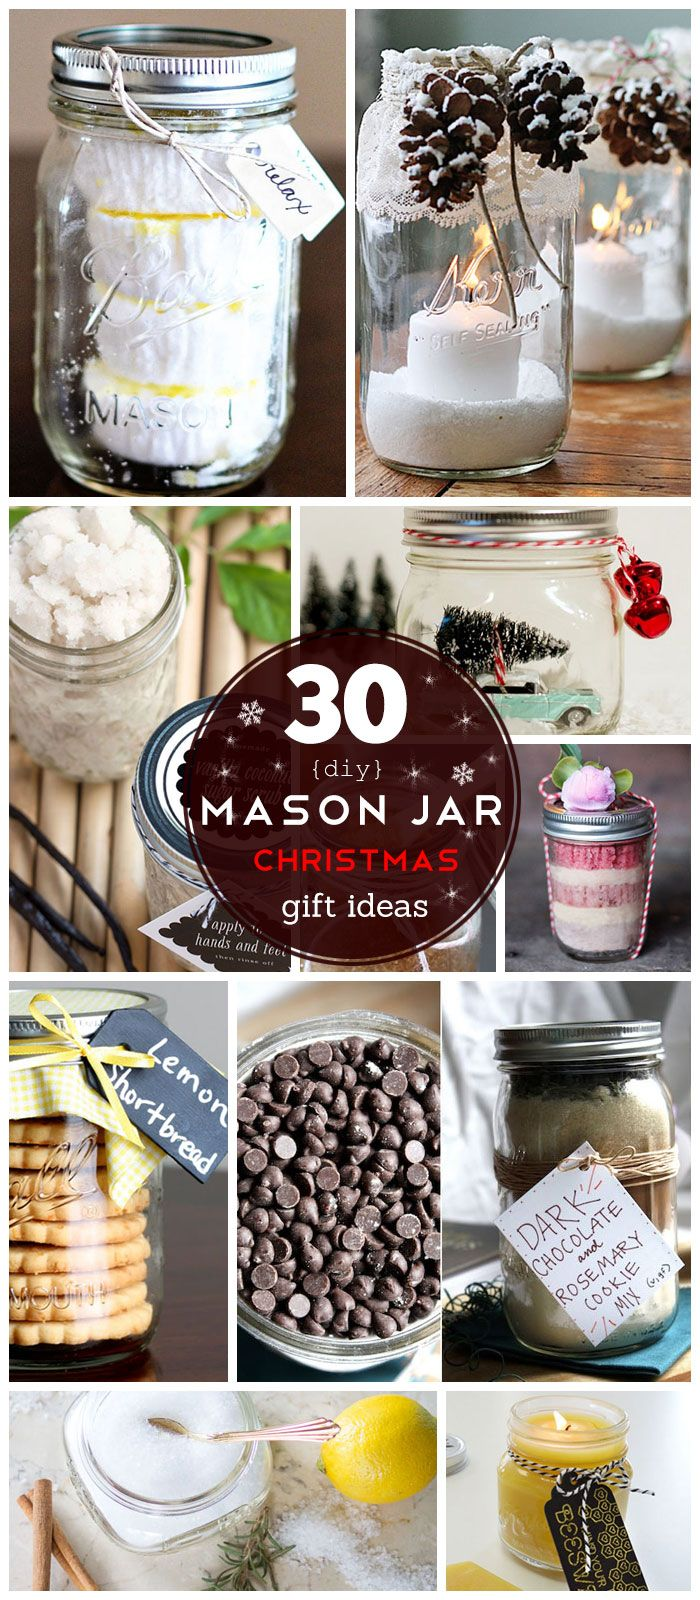 This is all about do it yourself mason jar projects!